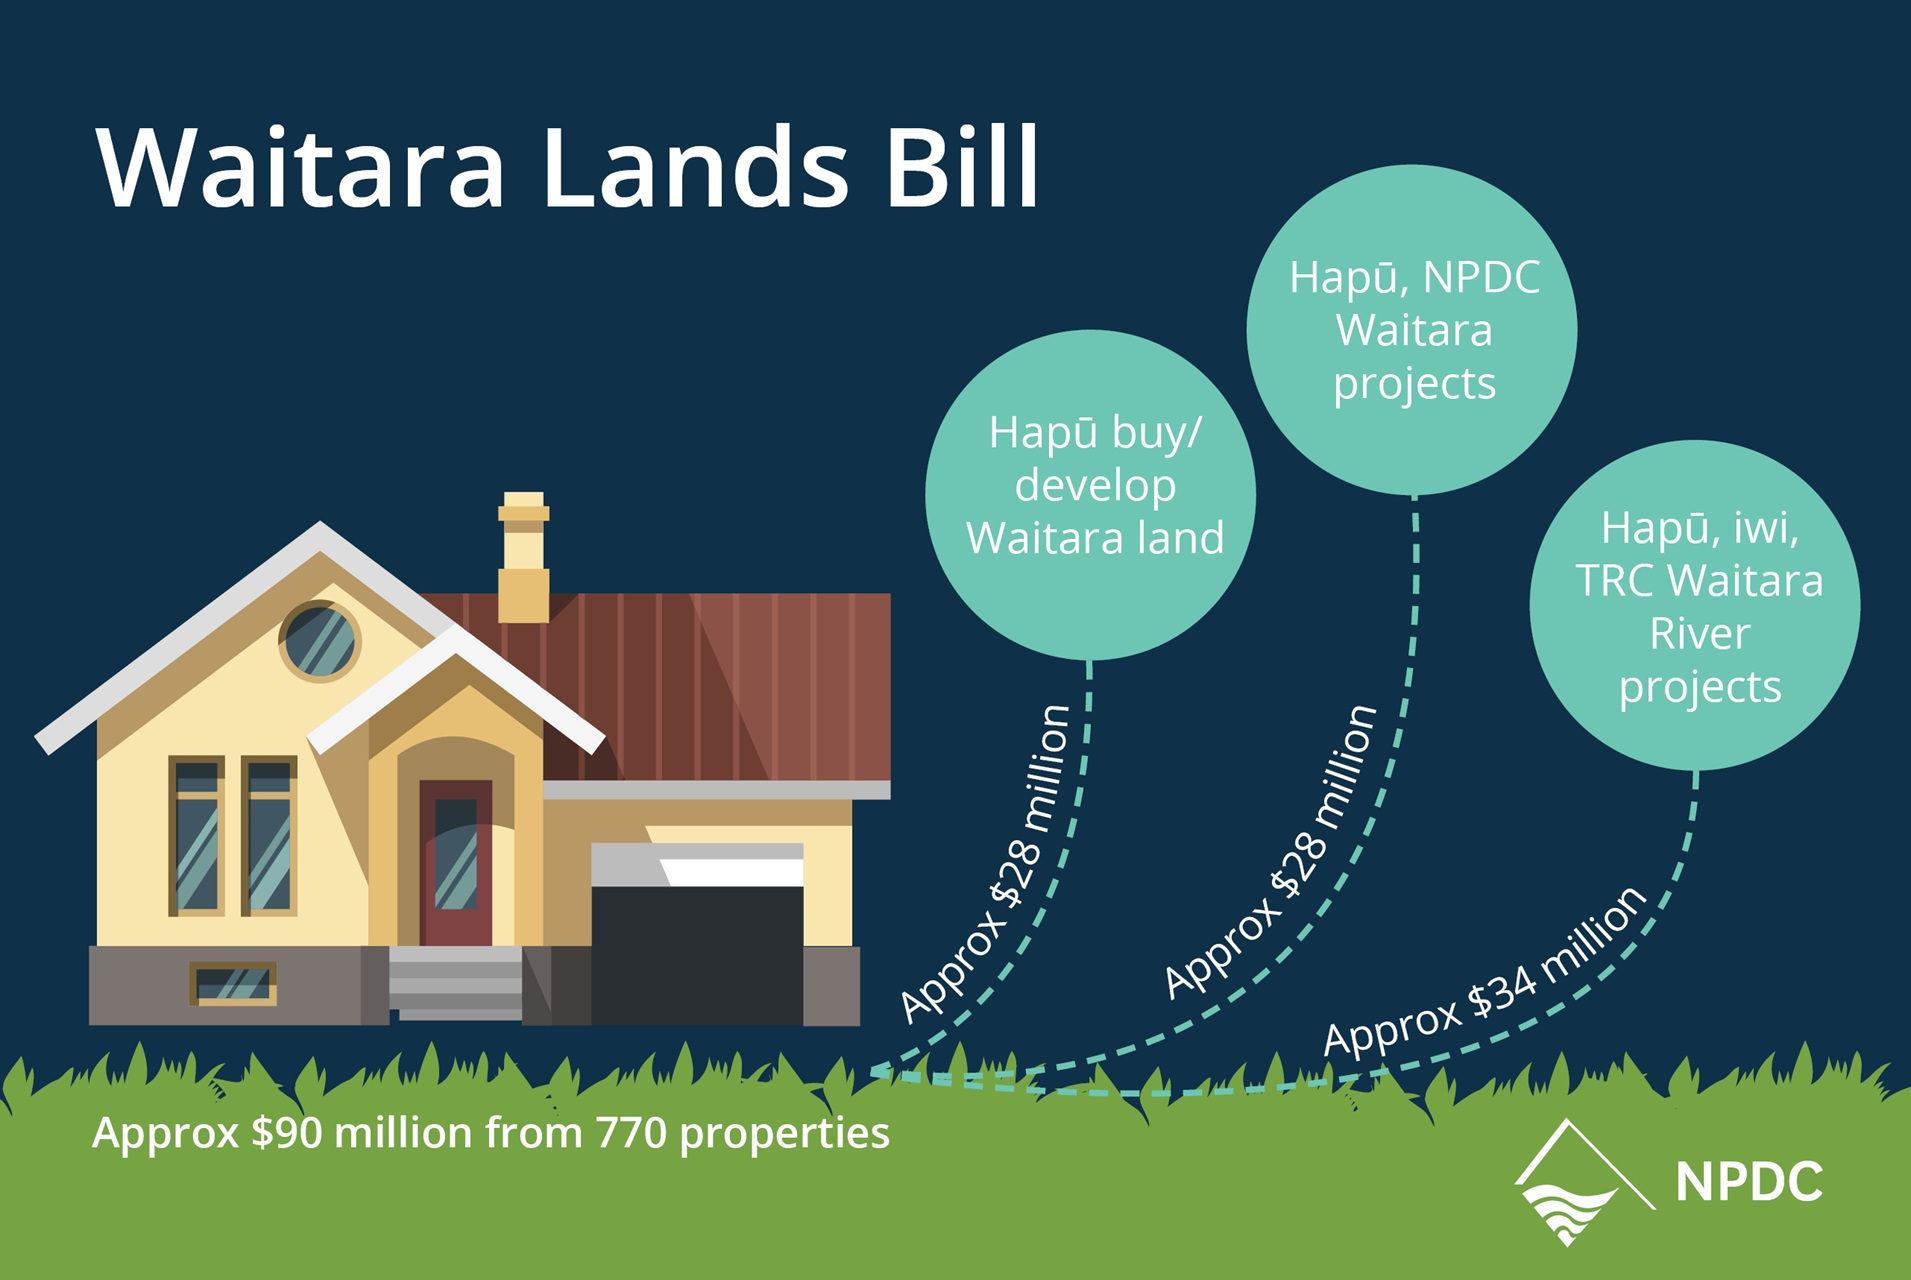 Waitara_Lands_Bill_graphic_NPDC.JPG